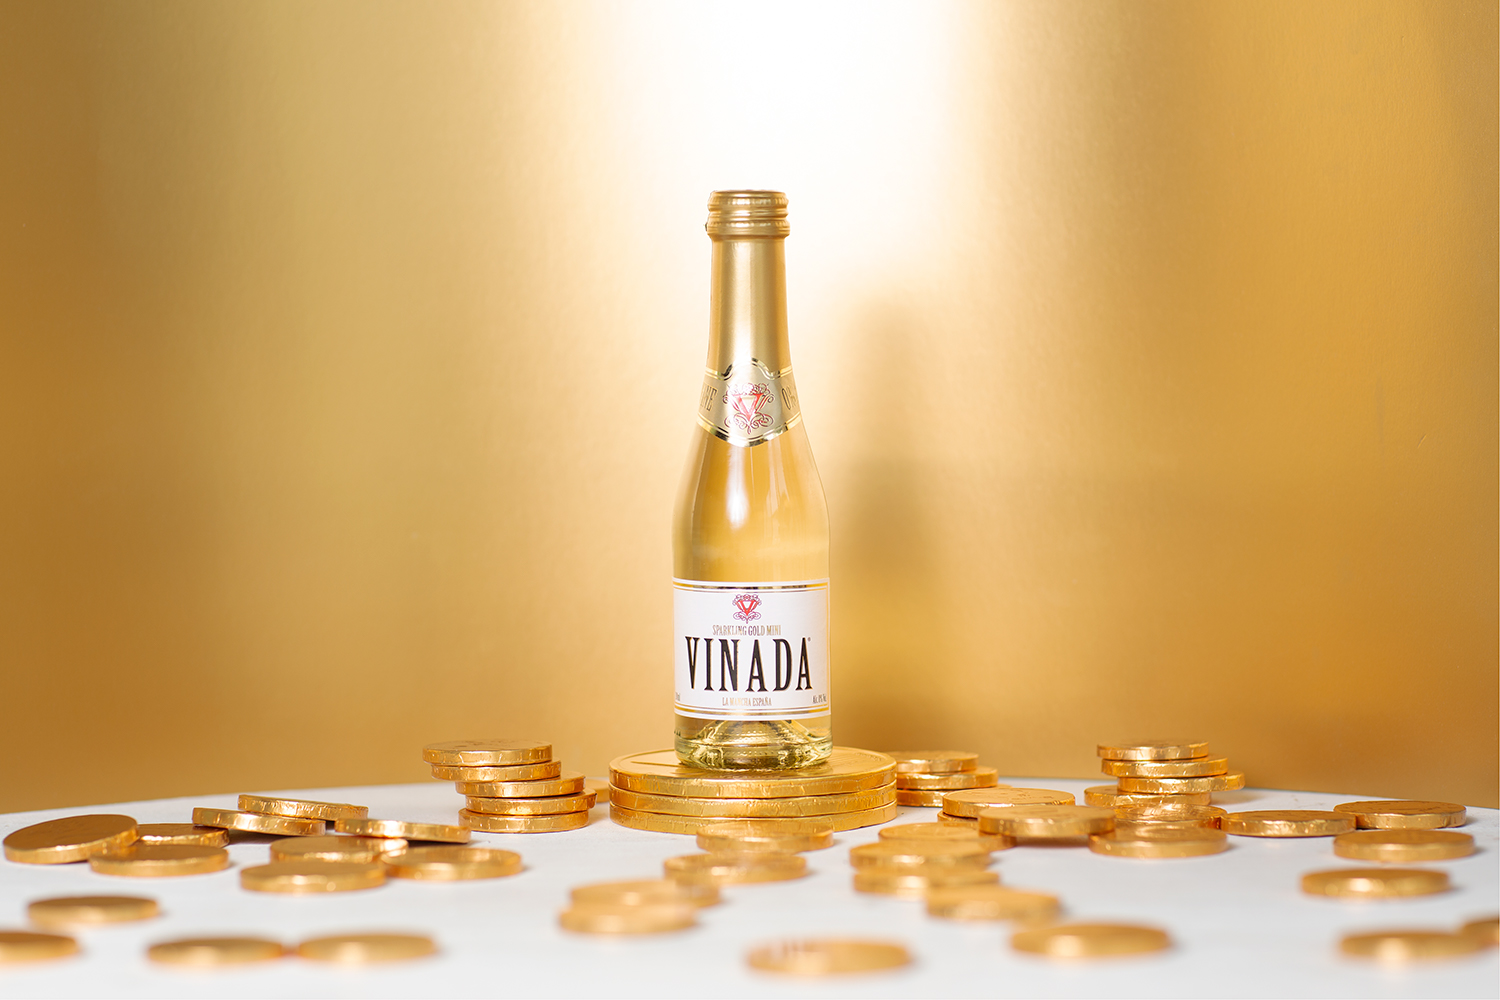 a bottle of vinada with confetti.